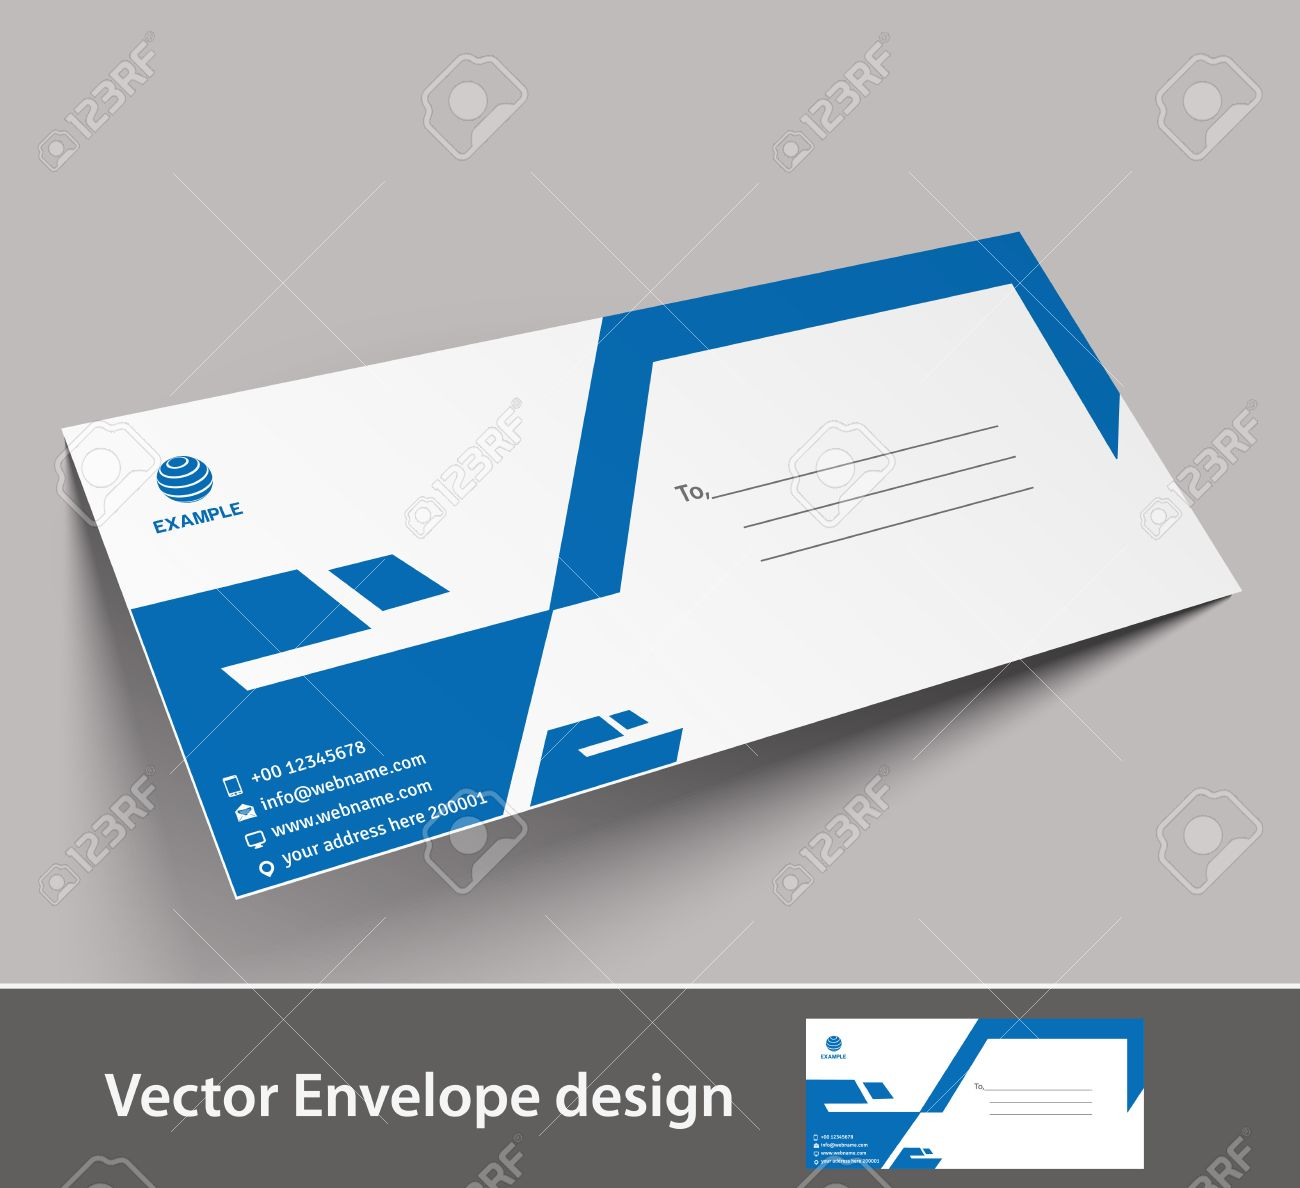 paper envelope templates for your project design vector